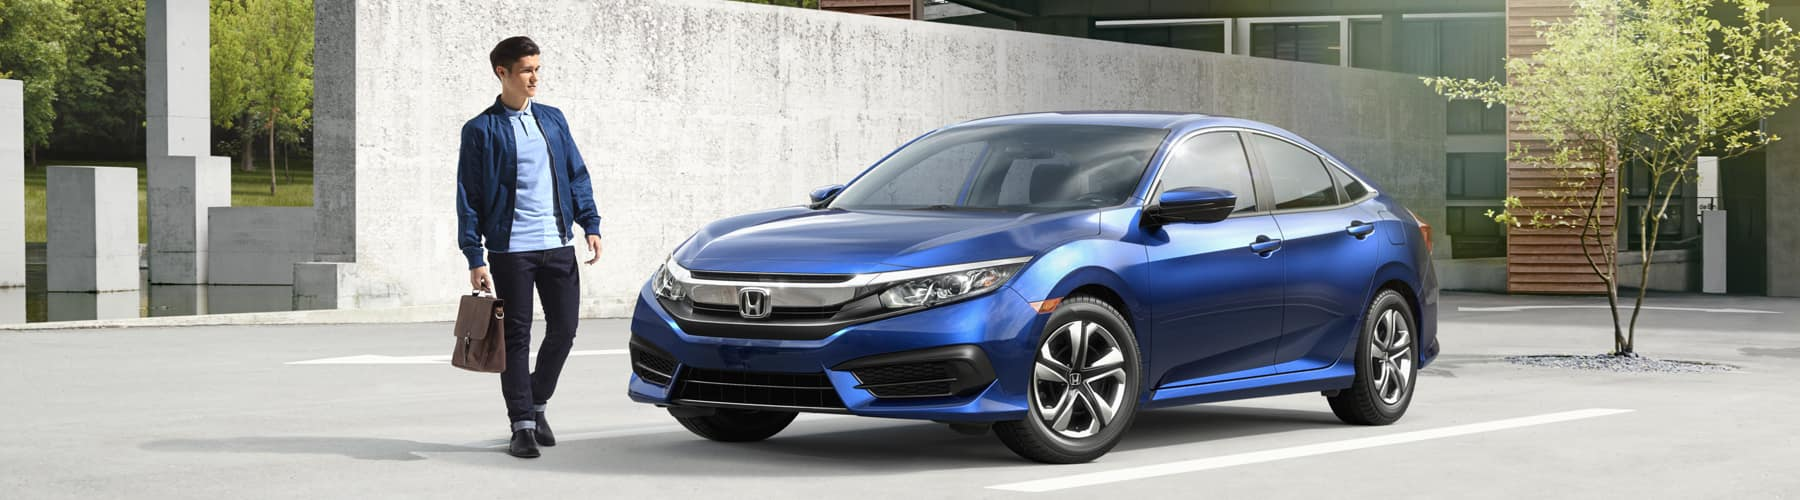 2018 Honda Civic Sedan Hampton Roads Honda Dealers